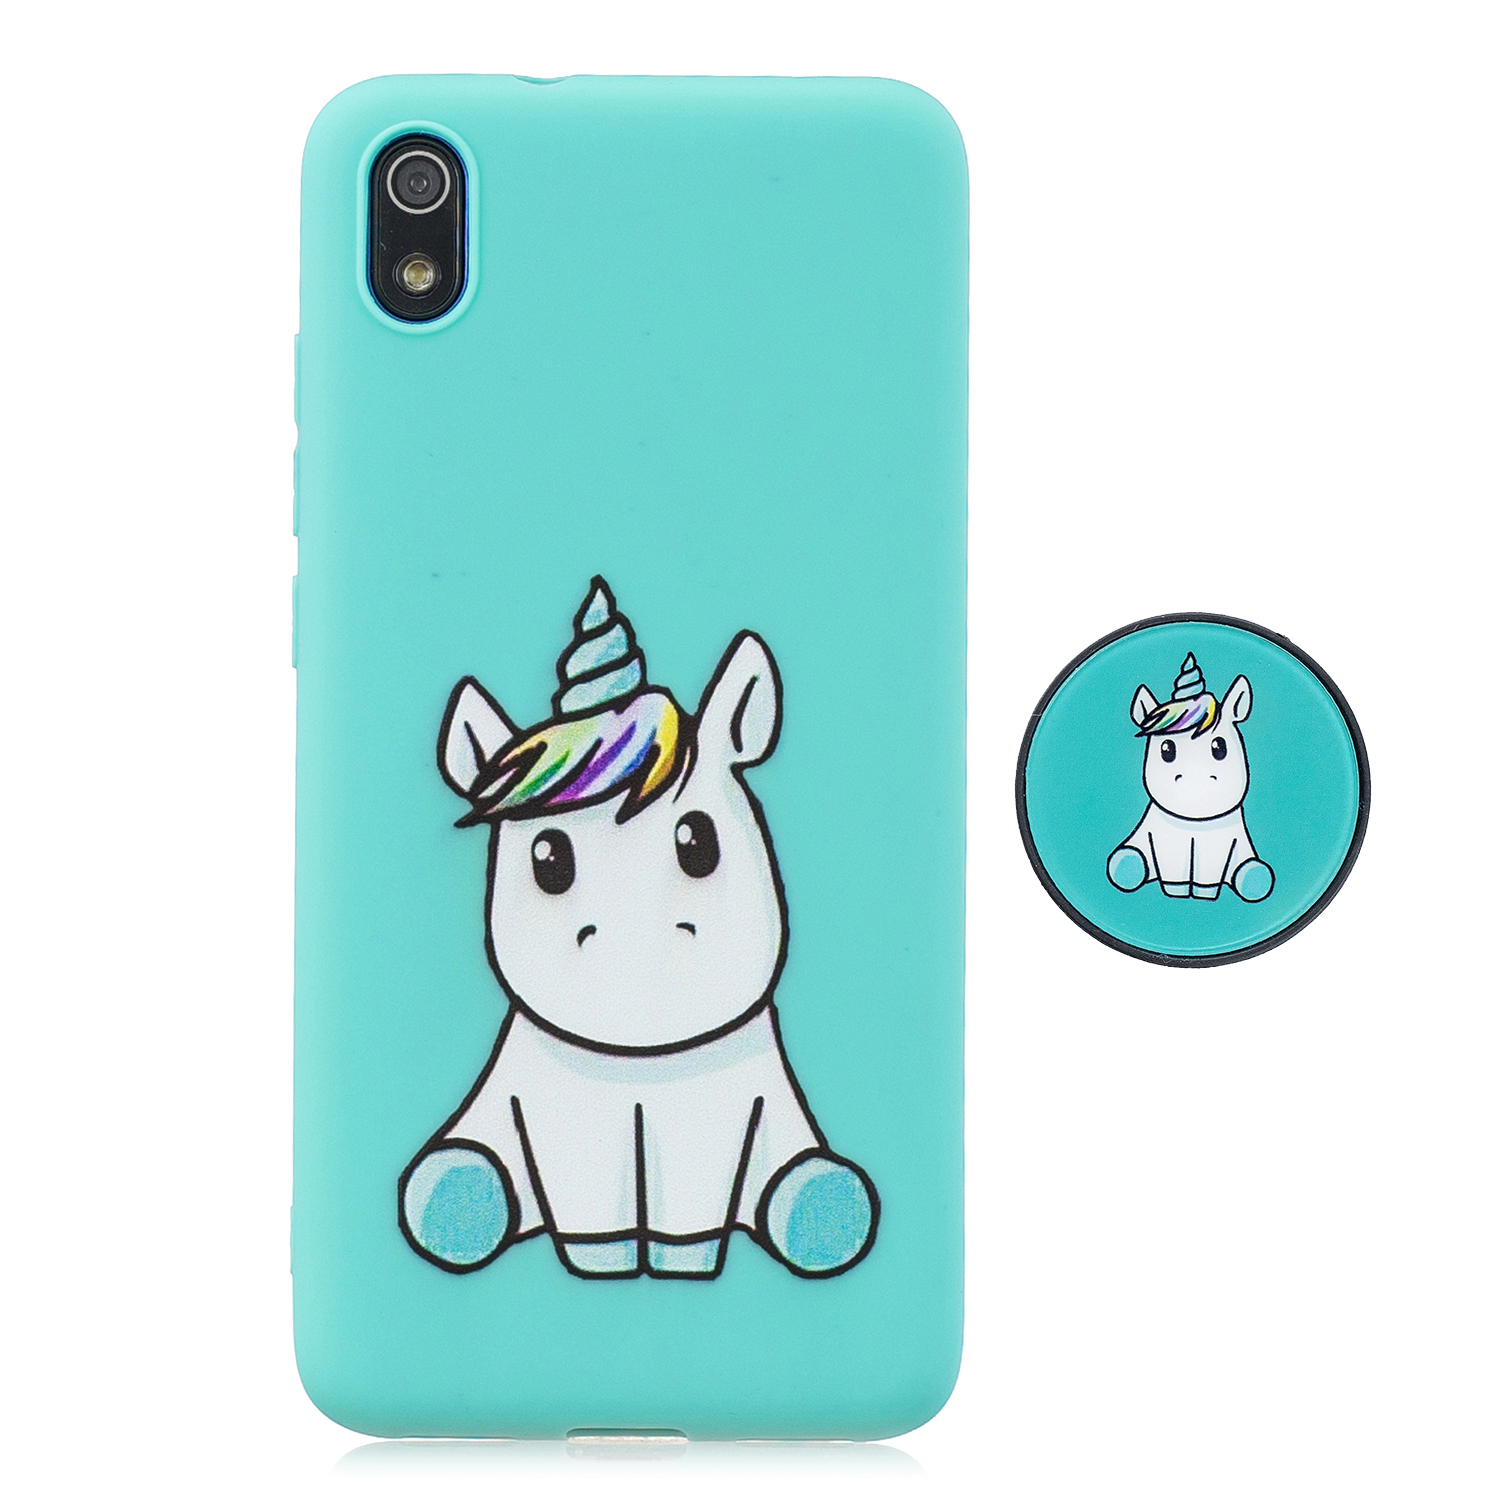 For Redmi 7A Soft TPU Full Cover Phone Case Protector Back Cover Phone Case with Matched Pattern Adjustable Bracket 5